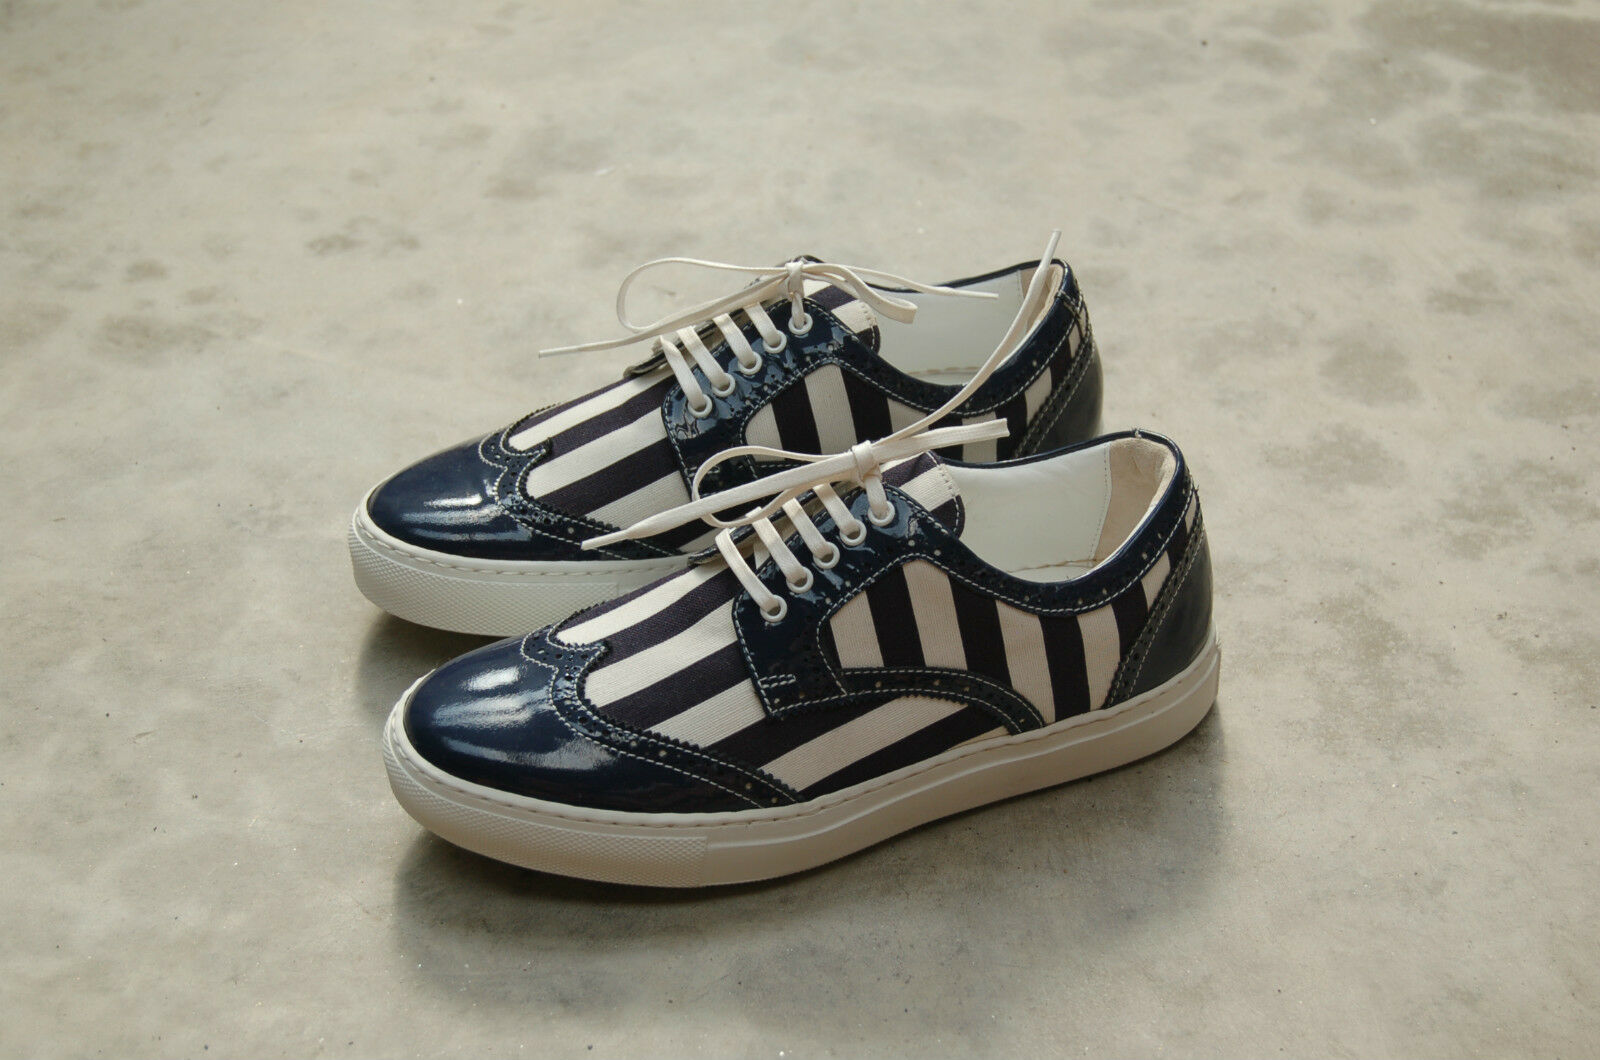 WOMAN - DONNA - SNEAKER - BLU/WHITE PATENT LTH.+ FABRIC - BLU/WHITE - - STITCHED RUBBER SOLE 093266